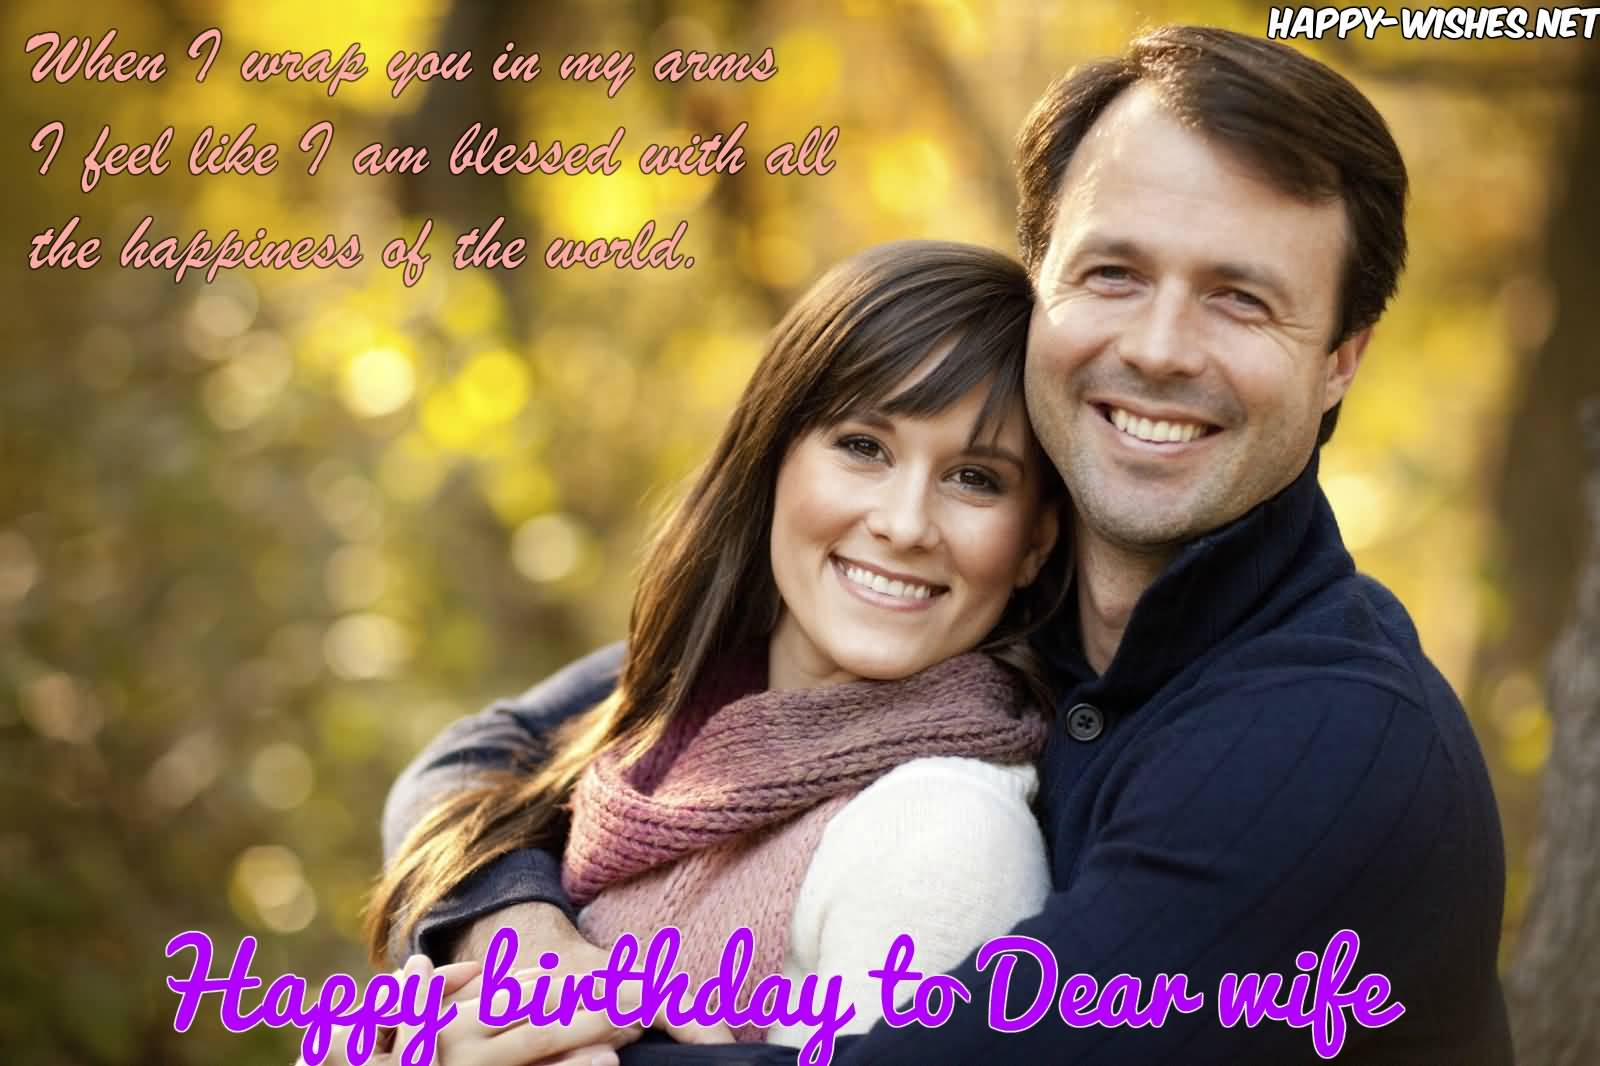 when I wrap you in my arms I feel like I am for dear Wife birthday blessing from hubby